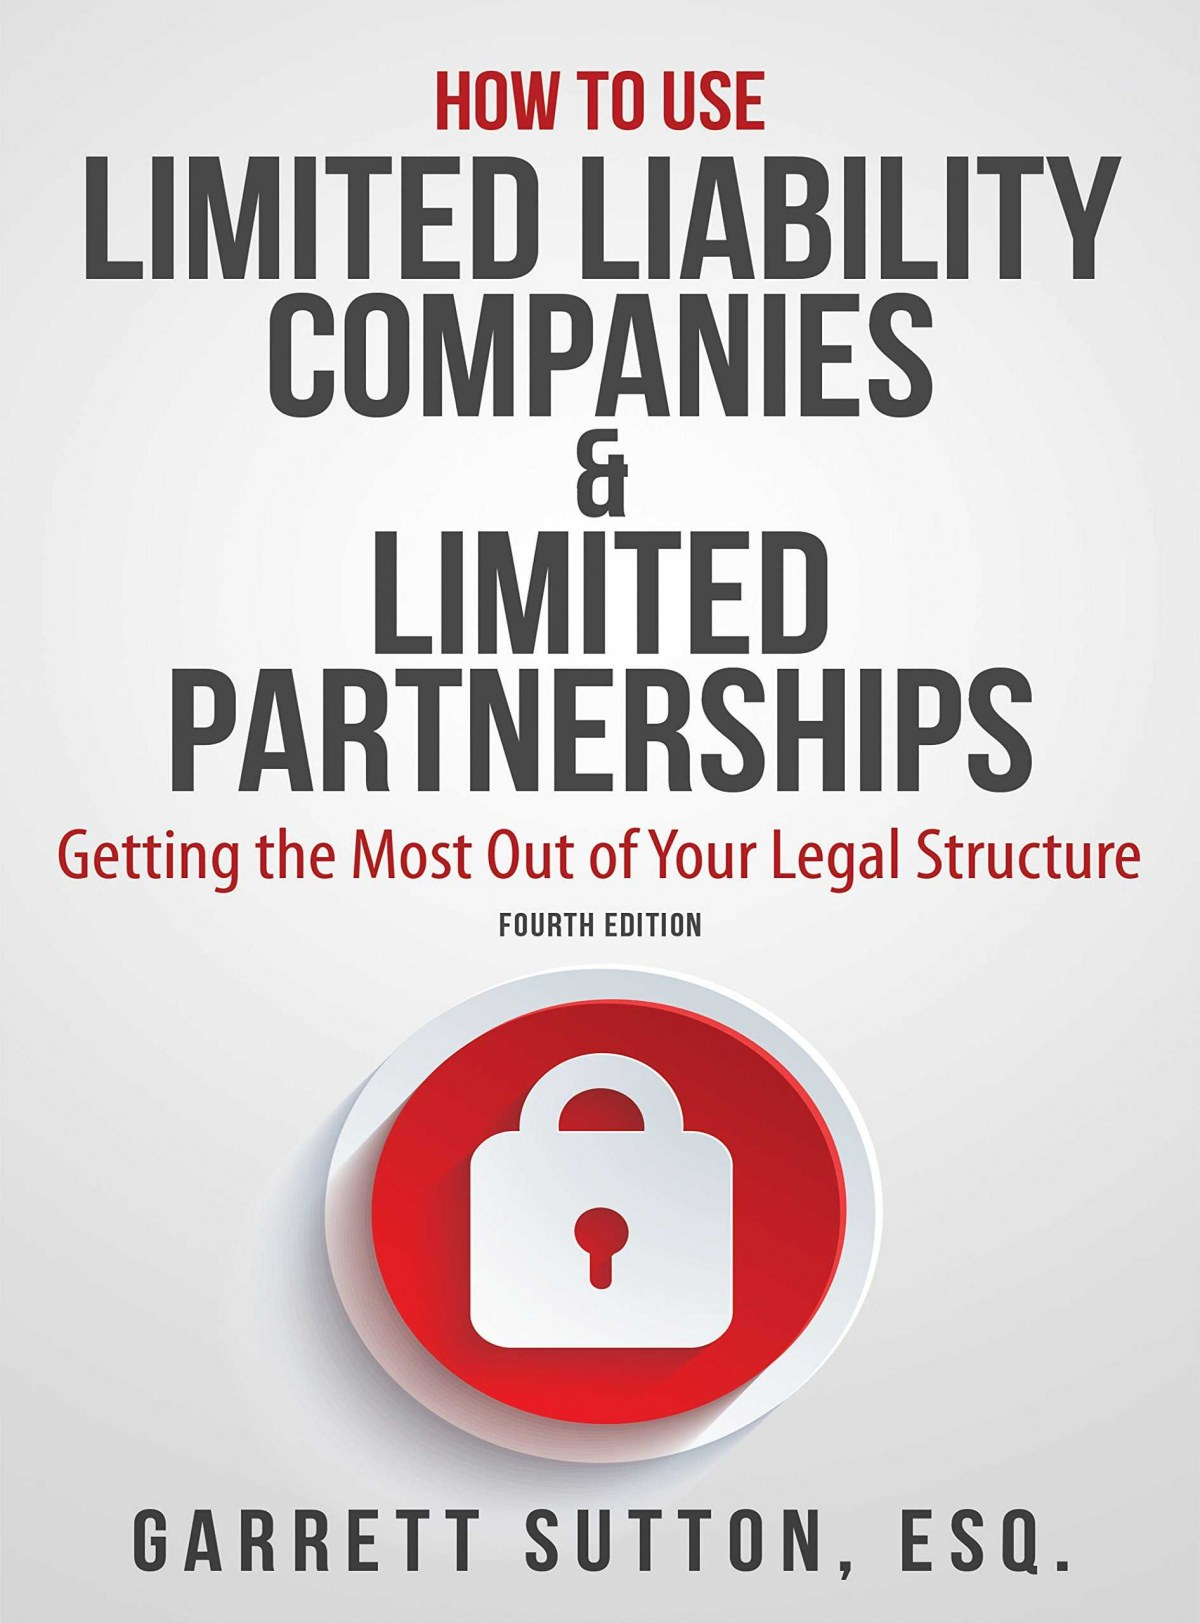 HOW TO USE LIMITED LABILITY COMPANIES & LIMITED PARTNERSHIPS